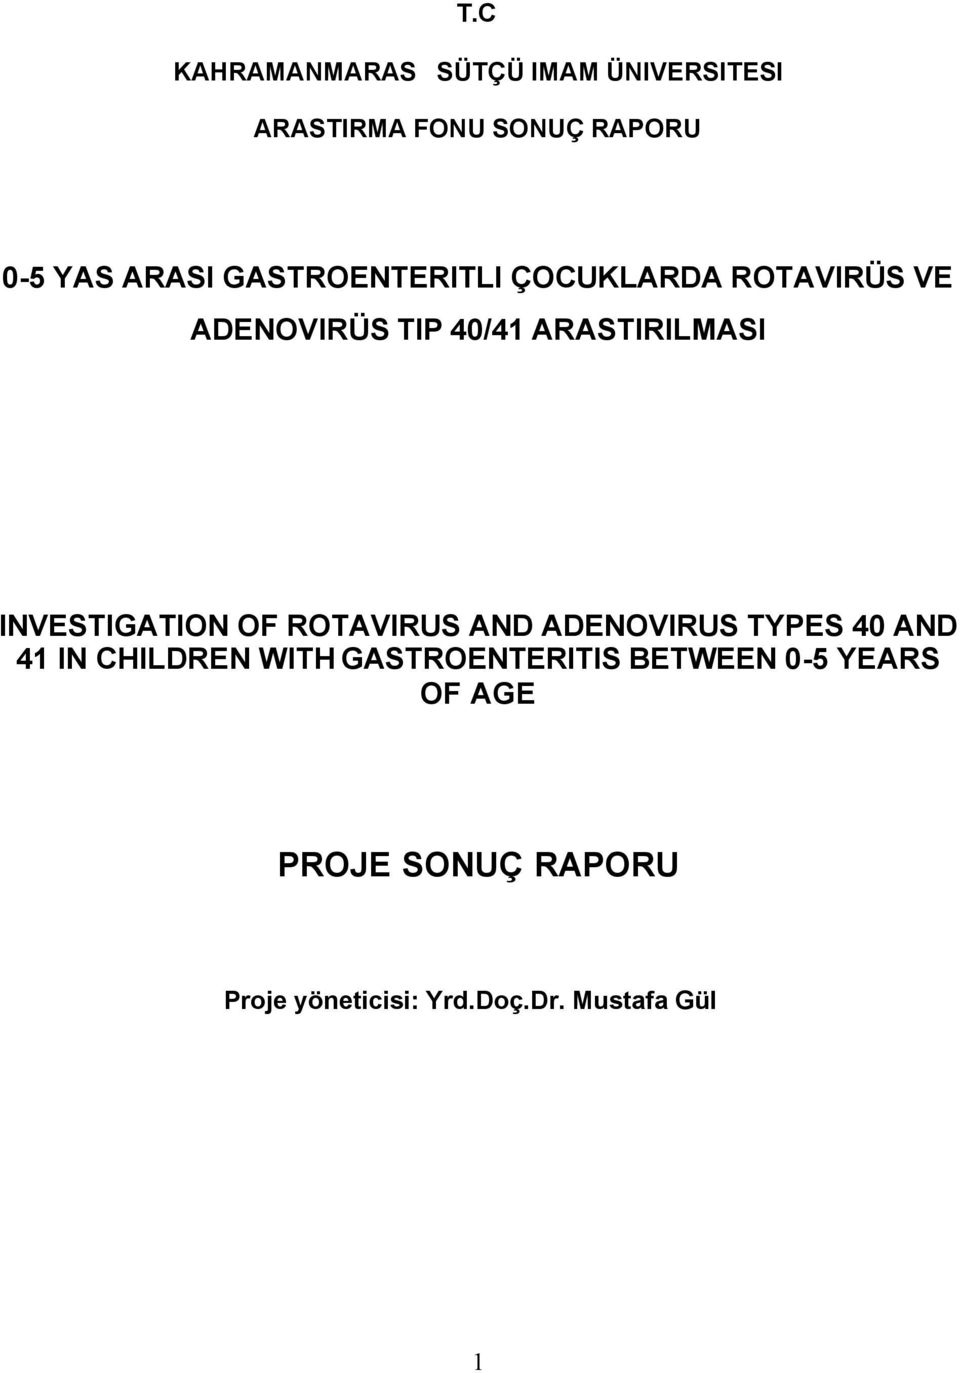 INVESTIGATION OF ROTAVIRUS AND ADENOVIRUS TYPES 40 AND 41 IN CHILDREN WITH